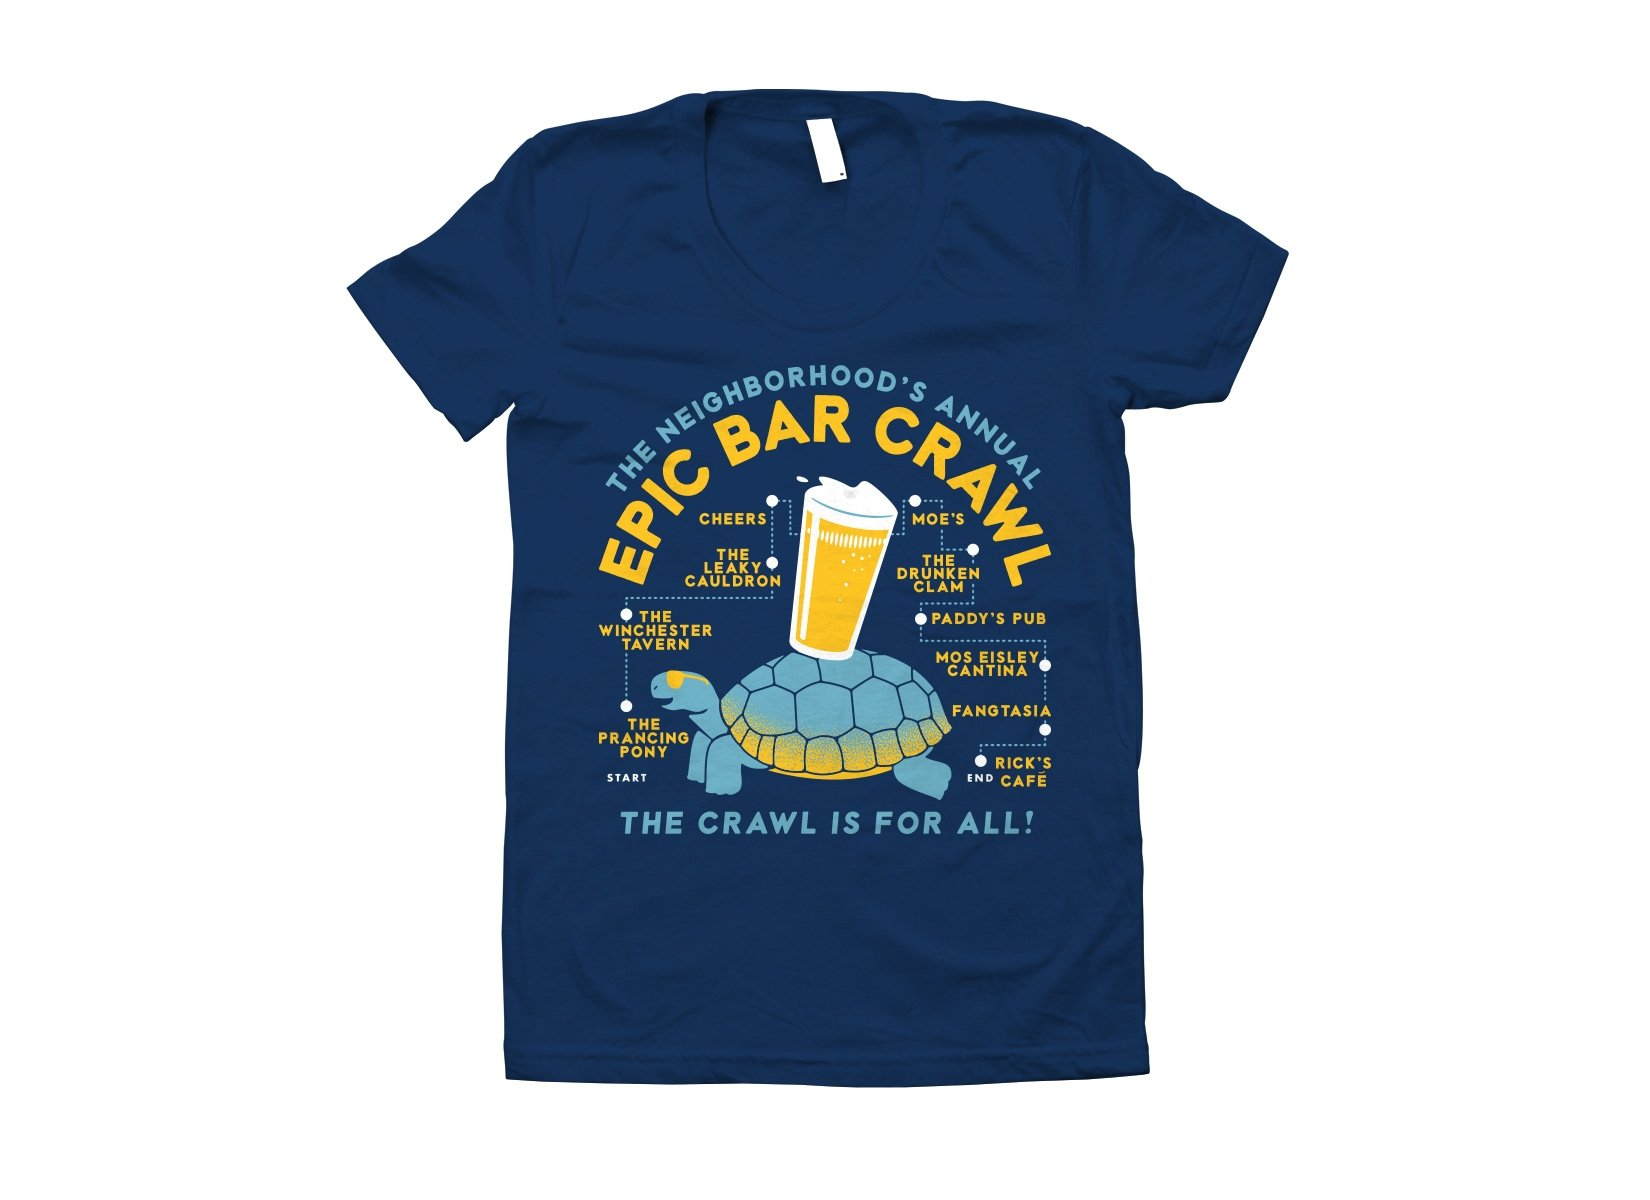 Epic Bar Crawl on Juniors T-Shirt